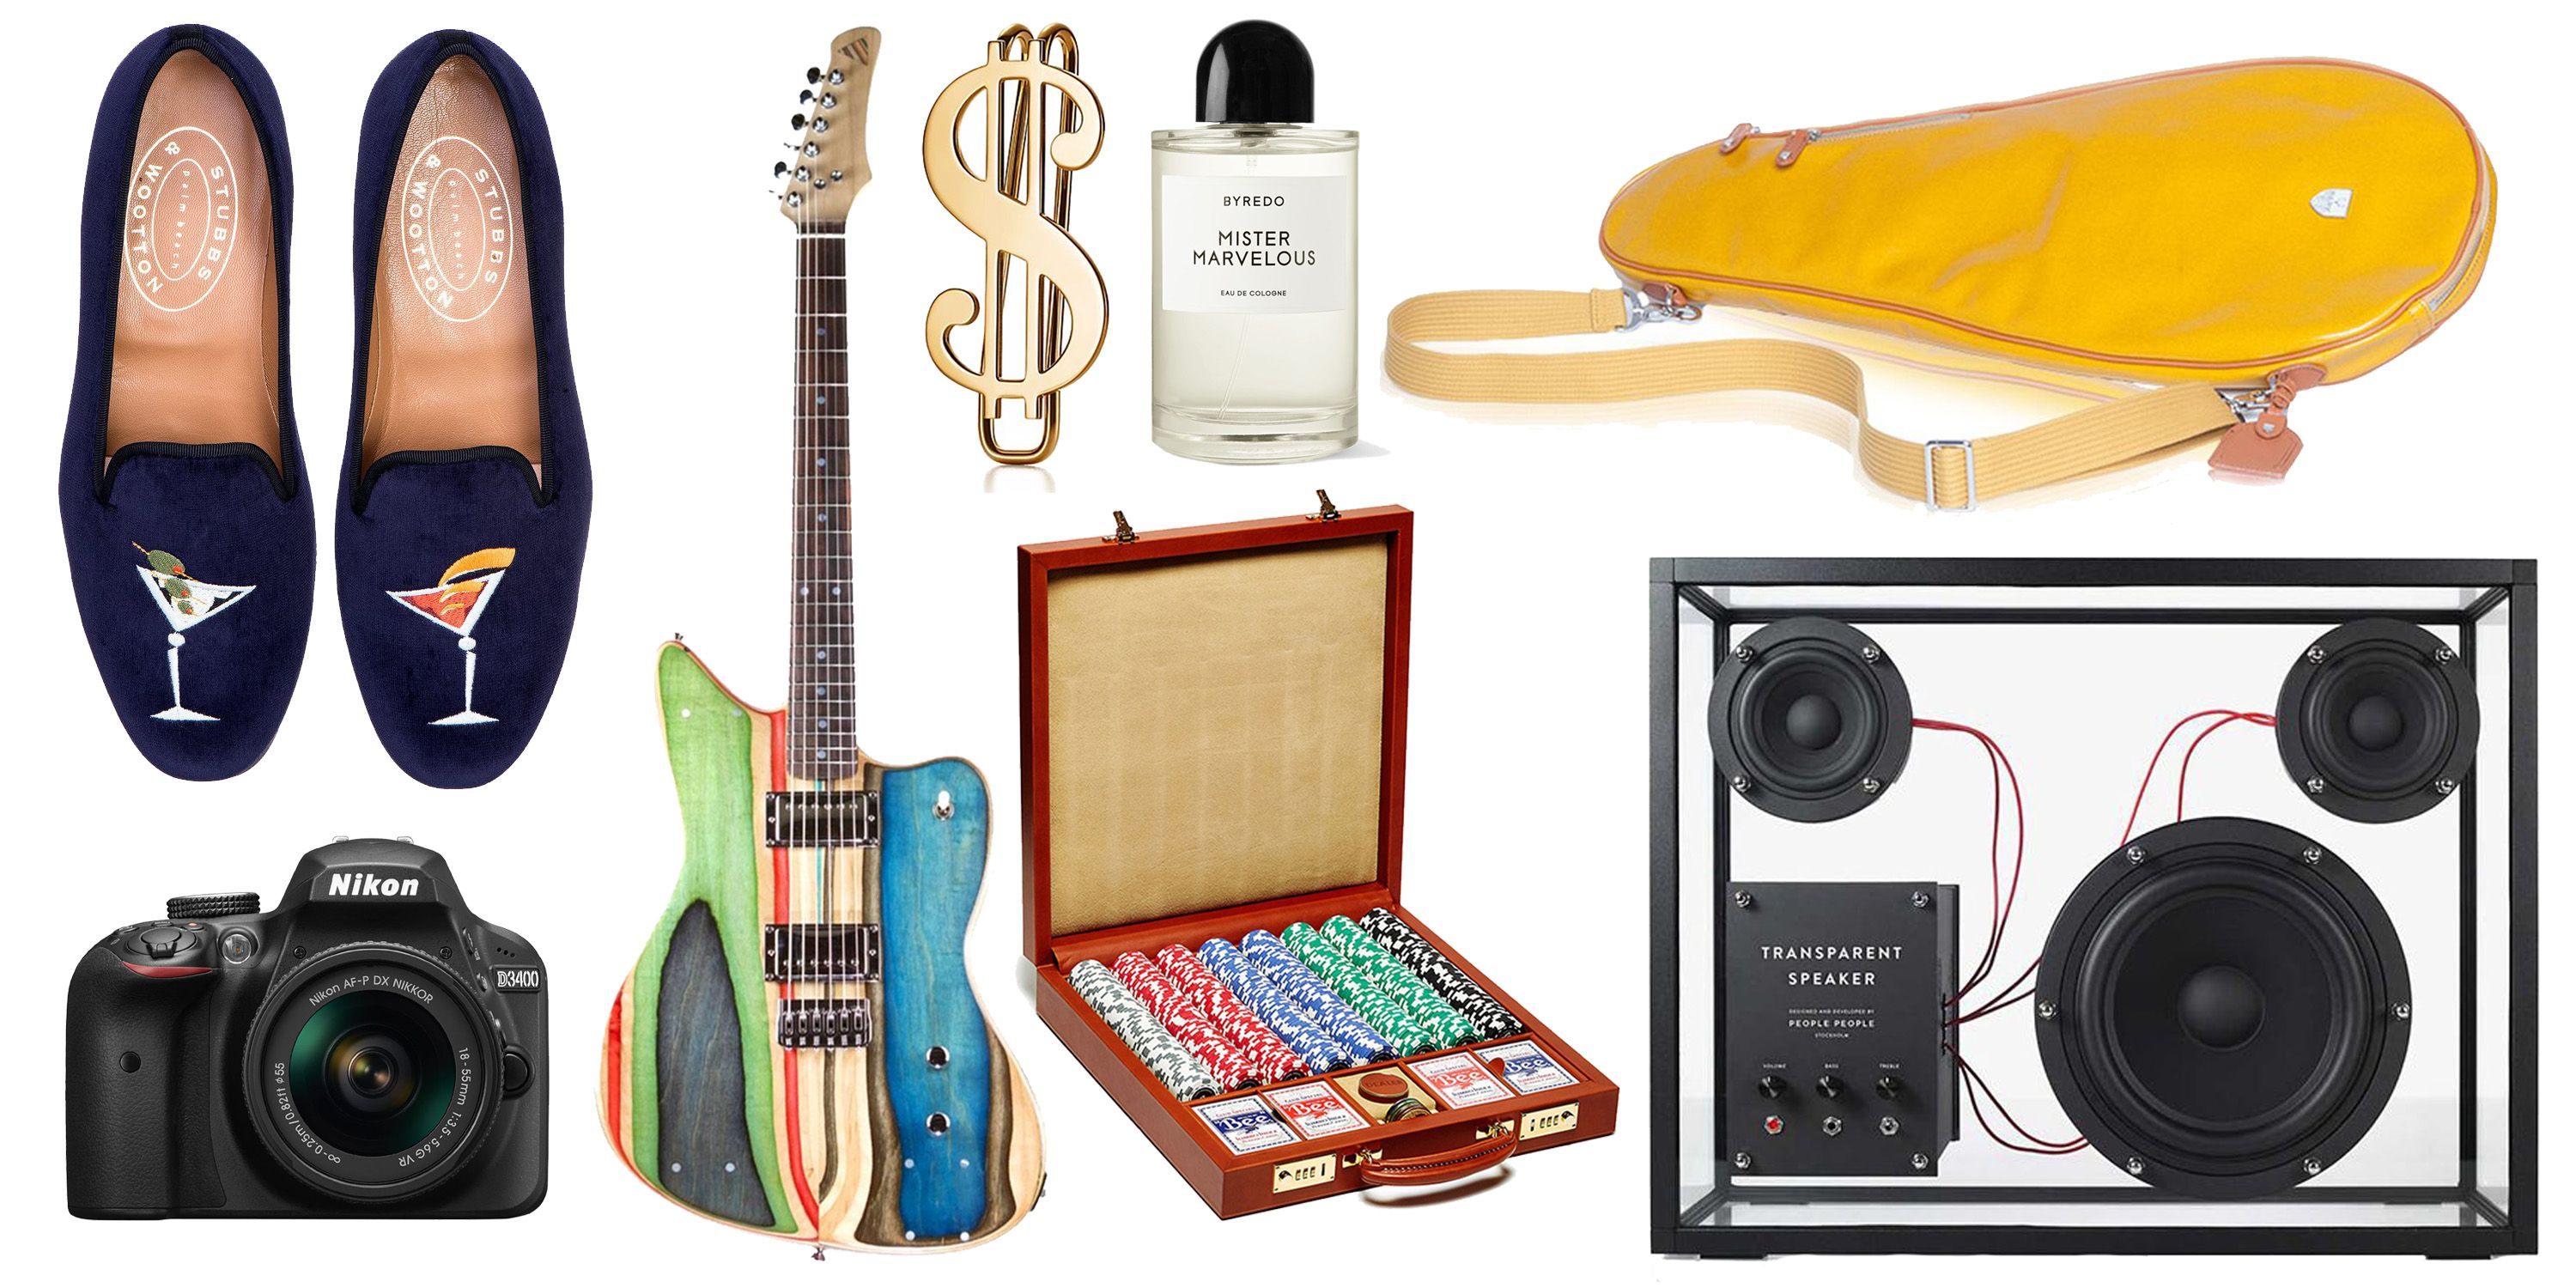 71 Fathers Day Gifts For Every Kind Of Dad